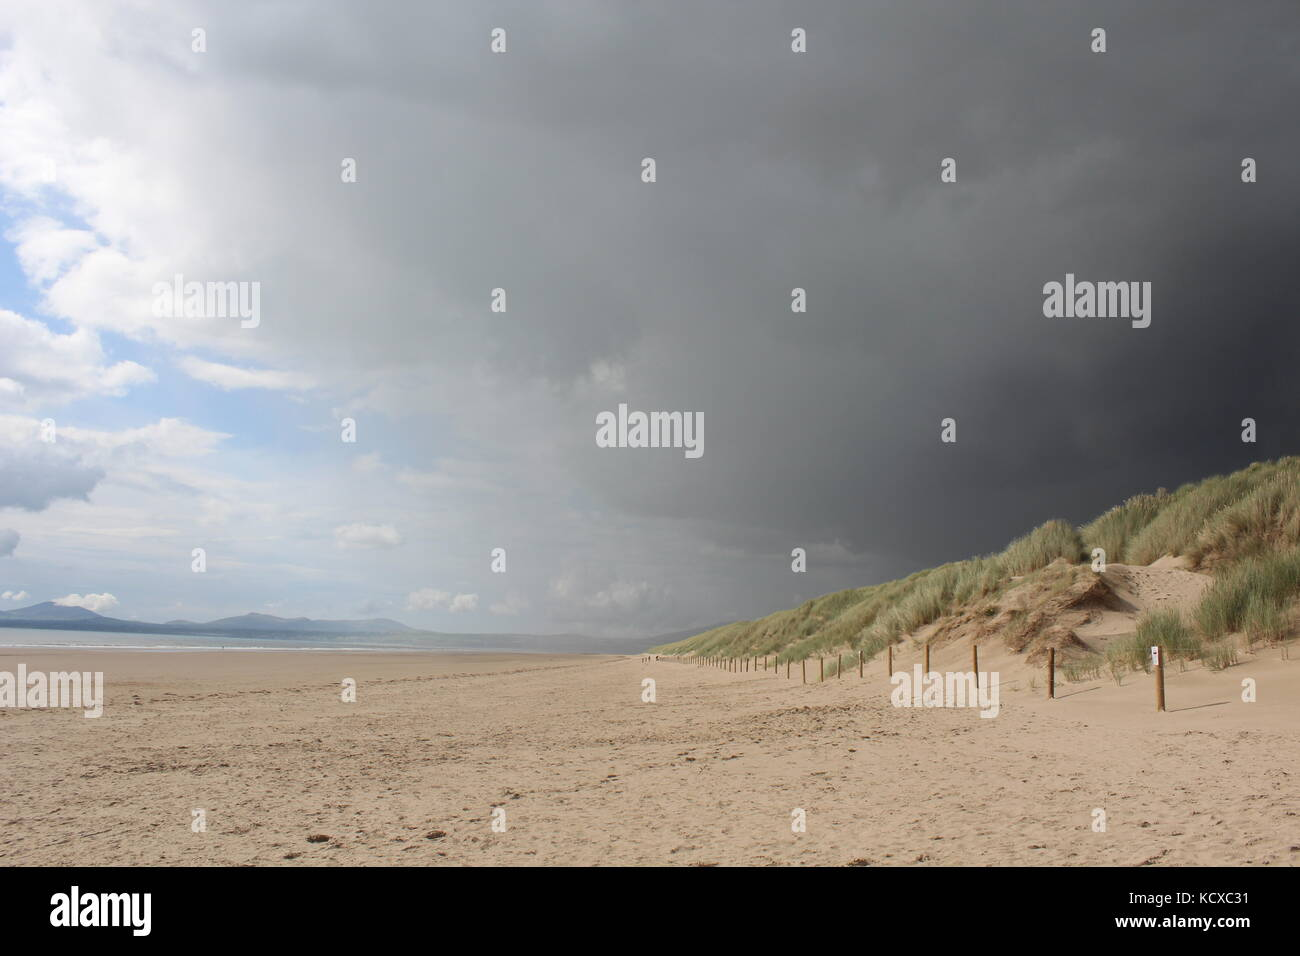 View along Harlech beach in dramatic weather, as storm hits. Stock Photo